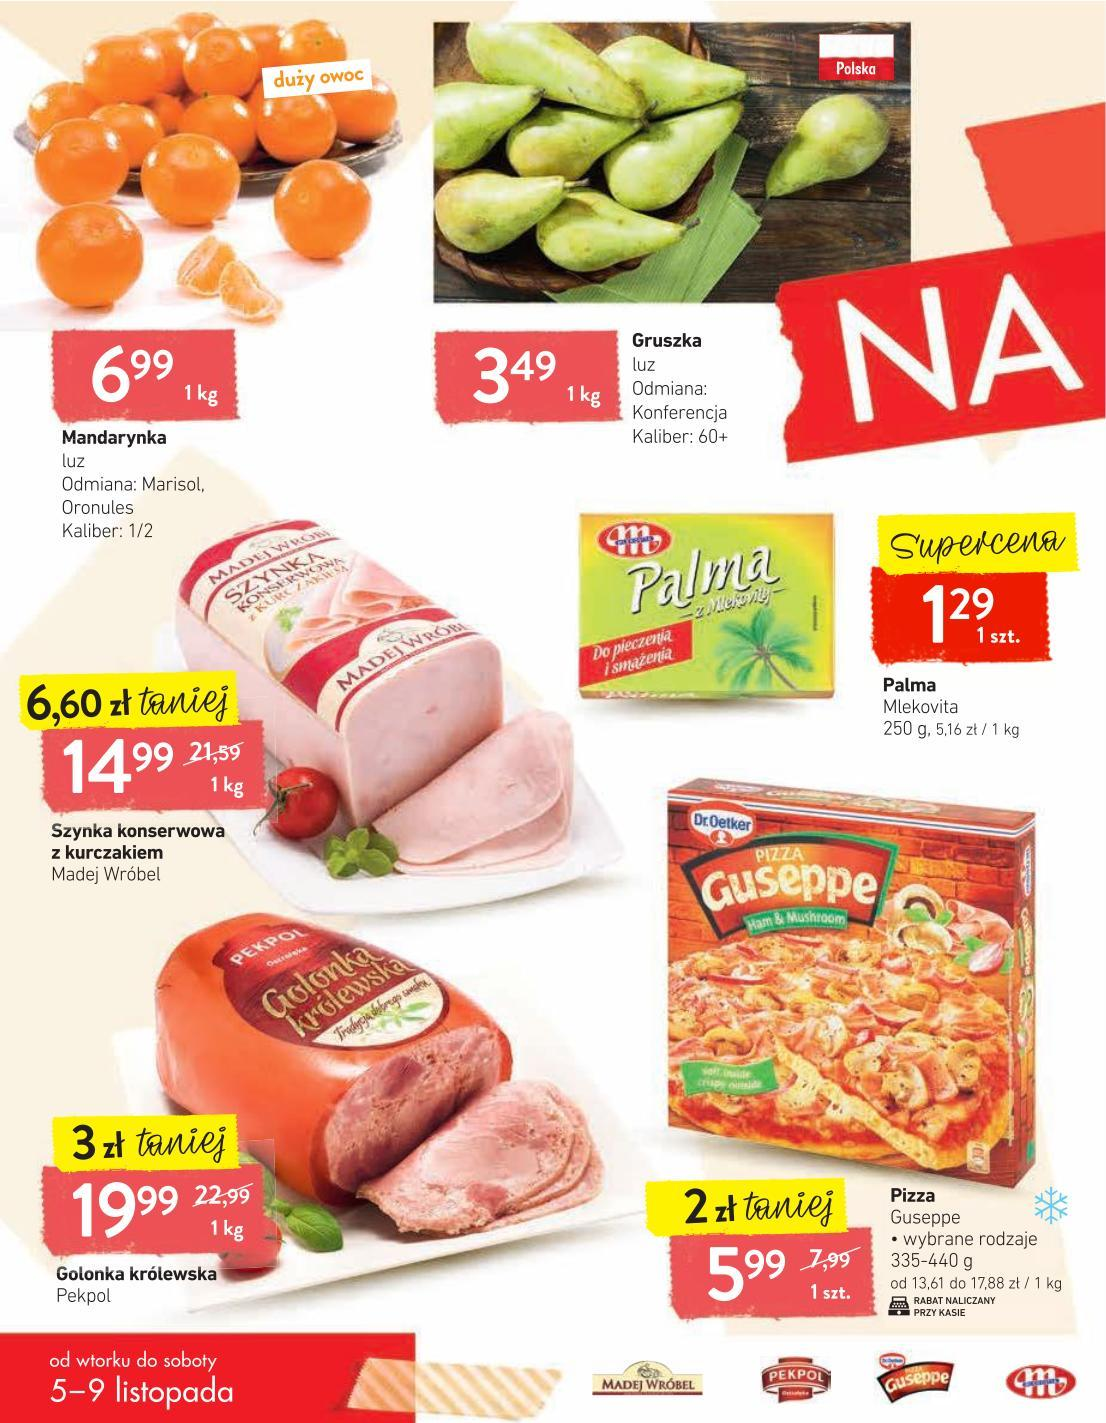 Gazetka promocyjna Intermarche do 09/11/2019 str.1